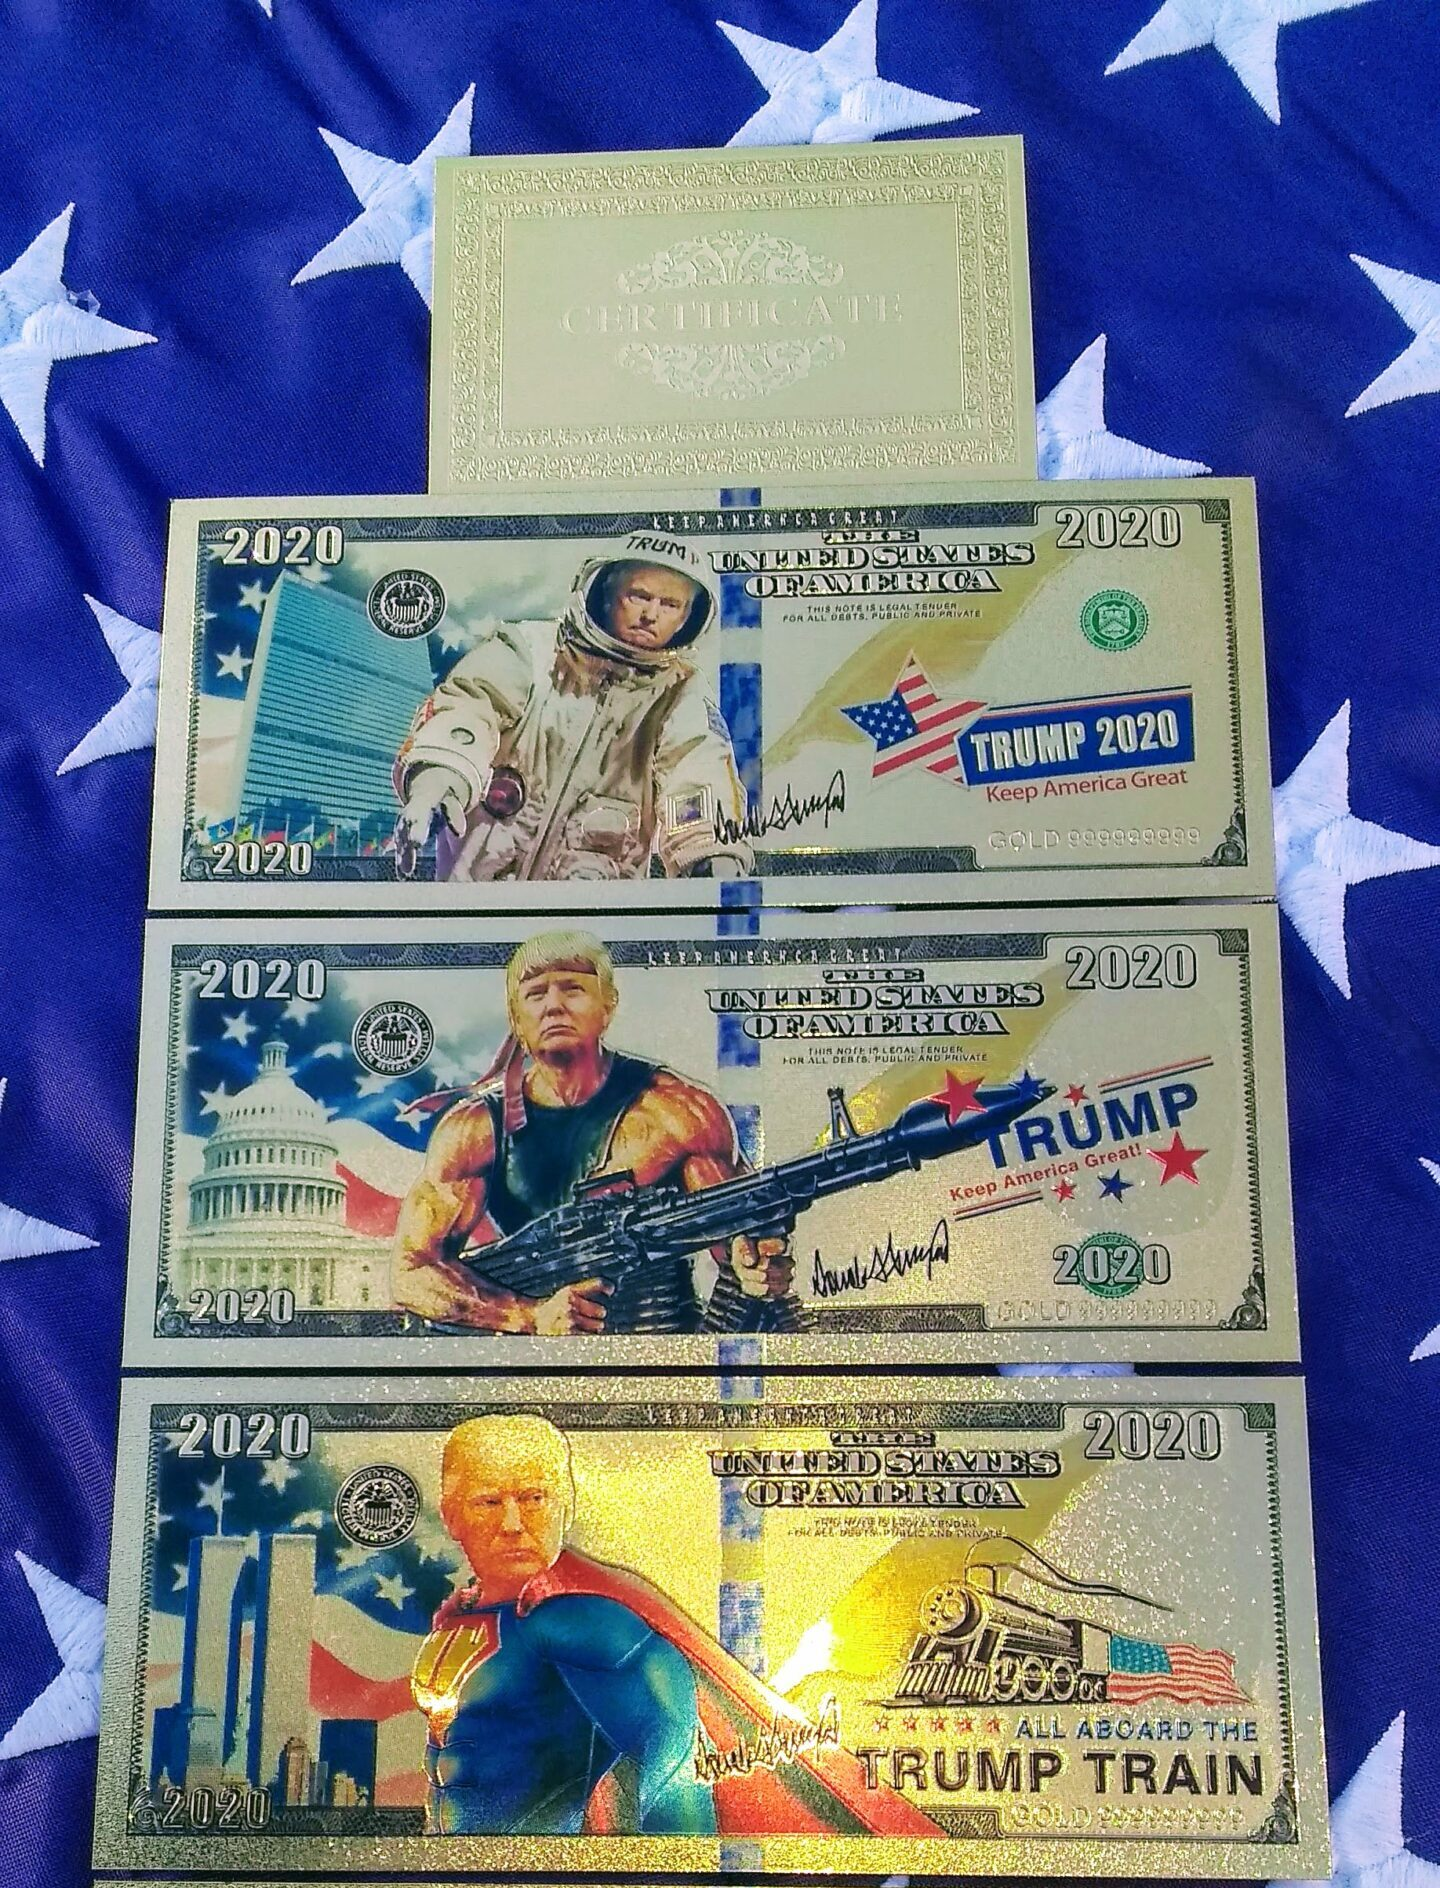 4 PC AUTHENTIC 24K GOLD SUPER HERO TRUMP BANK NOTE SERIES COLLECTOR'S SET w/ Certificate Of Authenticity – NEW ITEM!